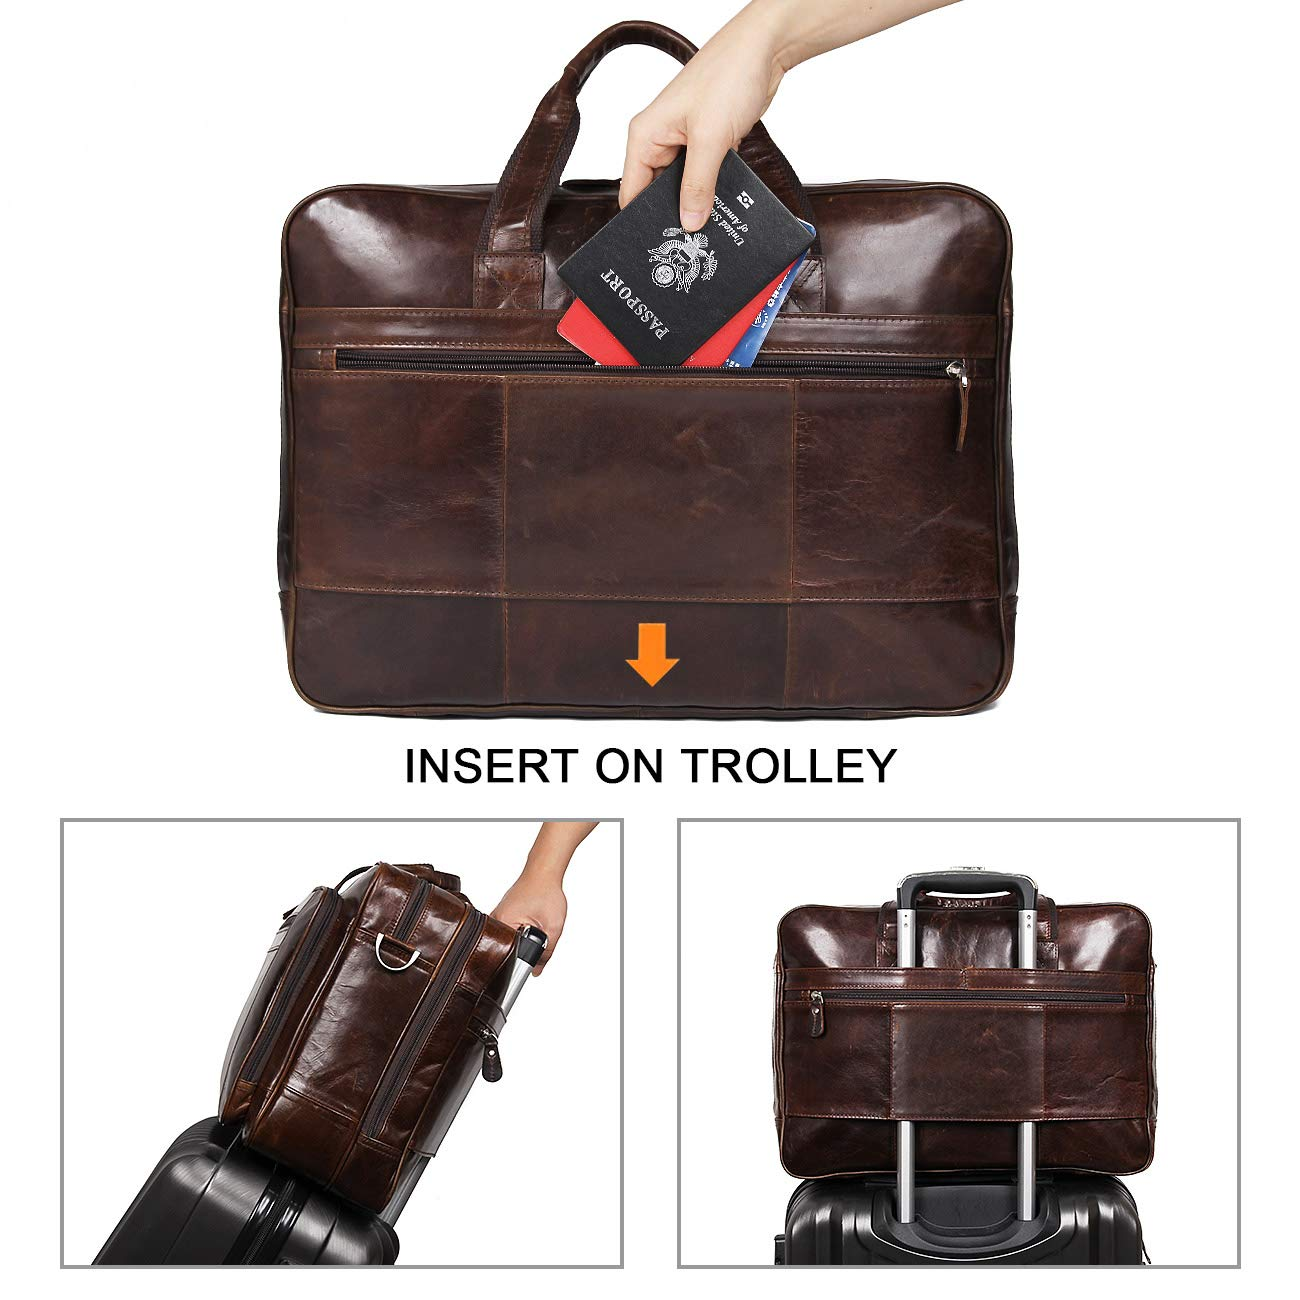 Augus Leather Briefcases for Men, Waterproof Travel Messenger Duffle Bags 17 Inch Laptop Bag (cofee-1) by Augus (Image #4)